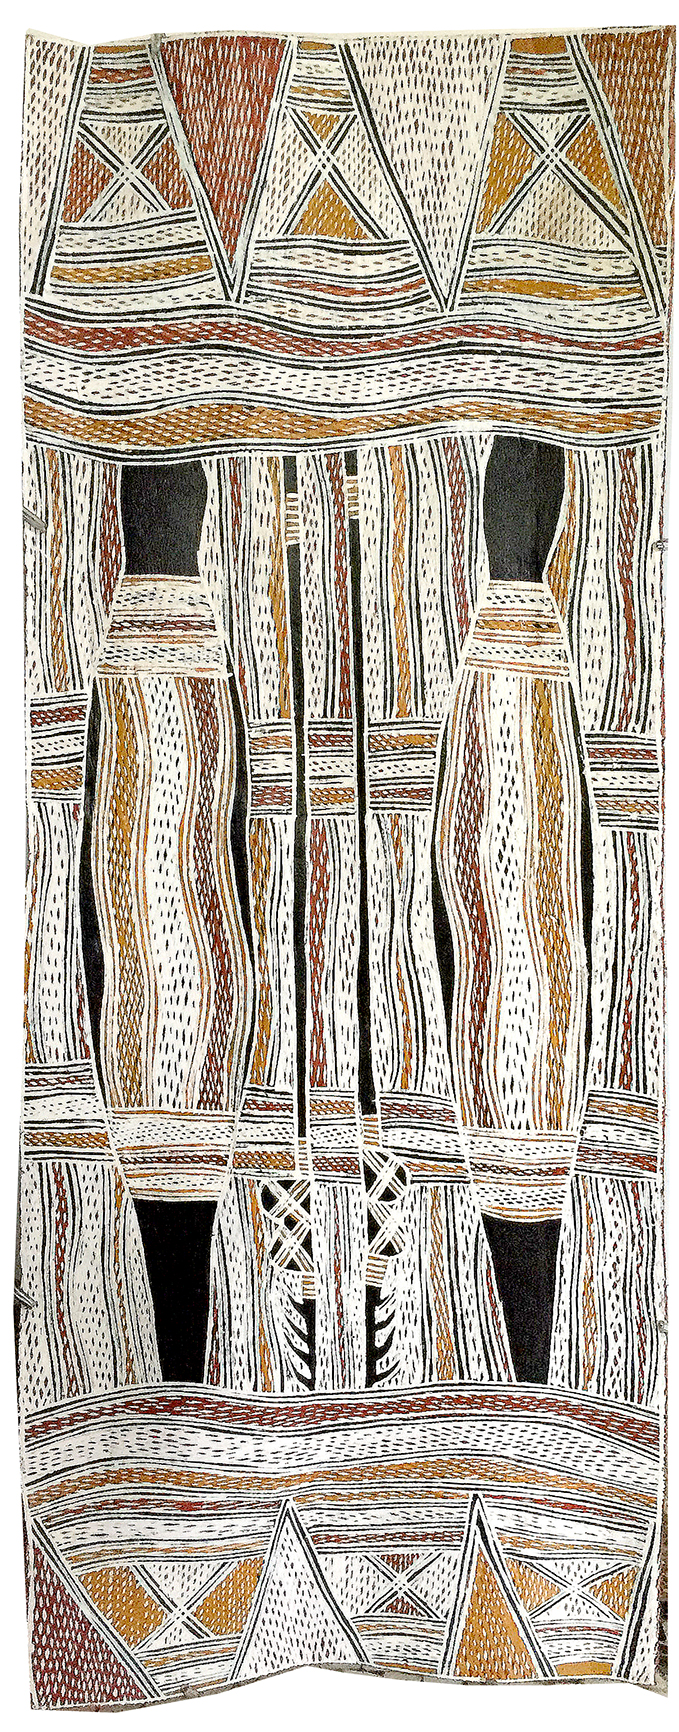 Artiste : Galuma Maymuru. Format : 96 x 34 cm. Piments naturels sur écorce d'eucalyptus. © Photo : Aboriginal Signature, with the courtesy of Yirrkala Buku Larrngay Mulka.